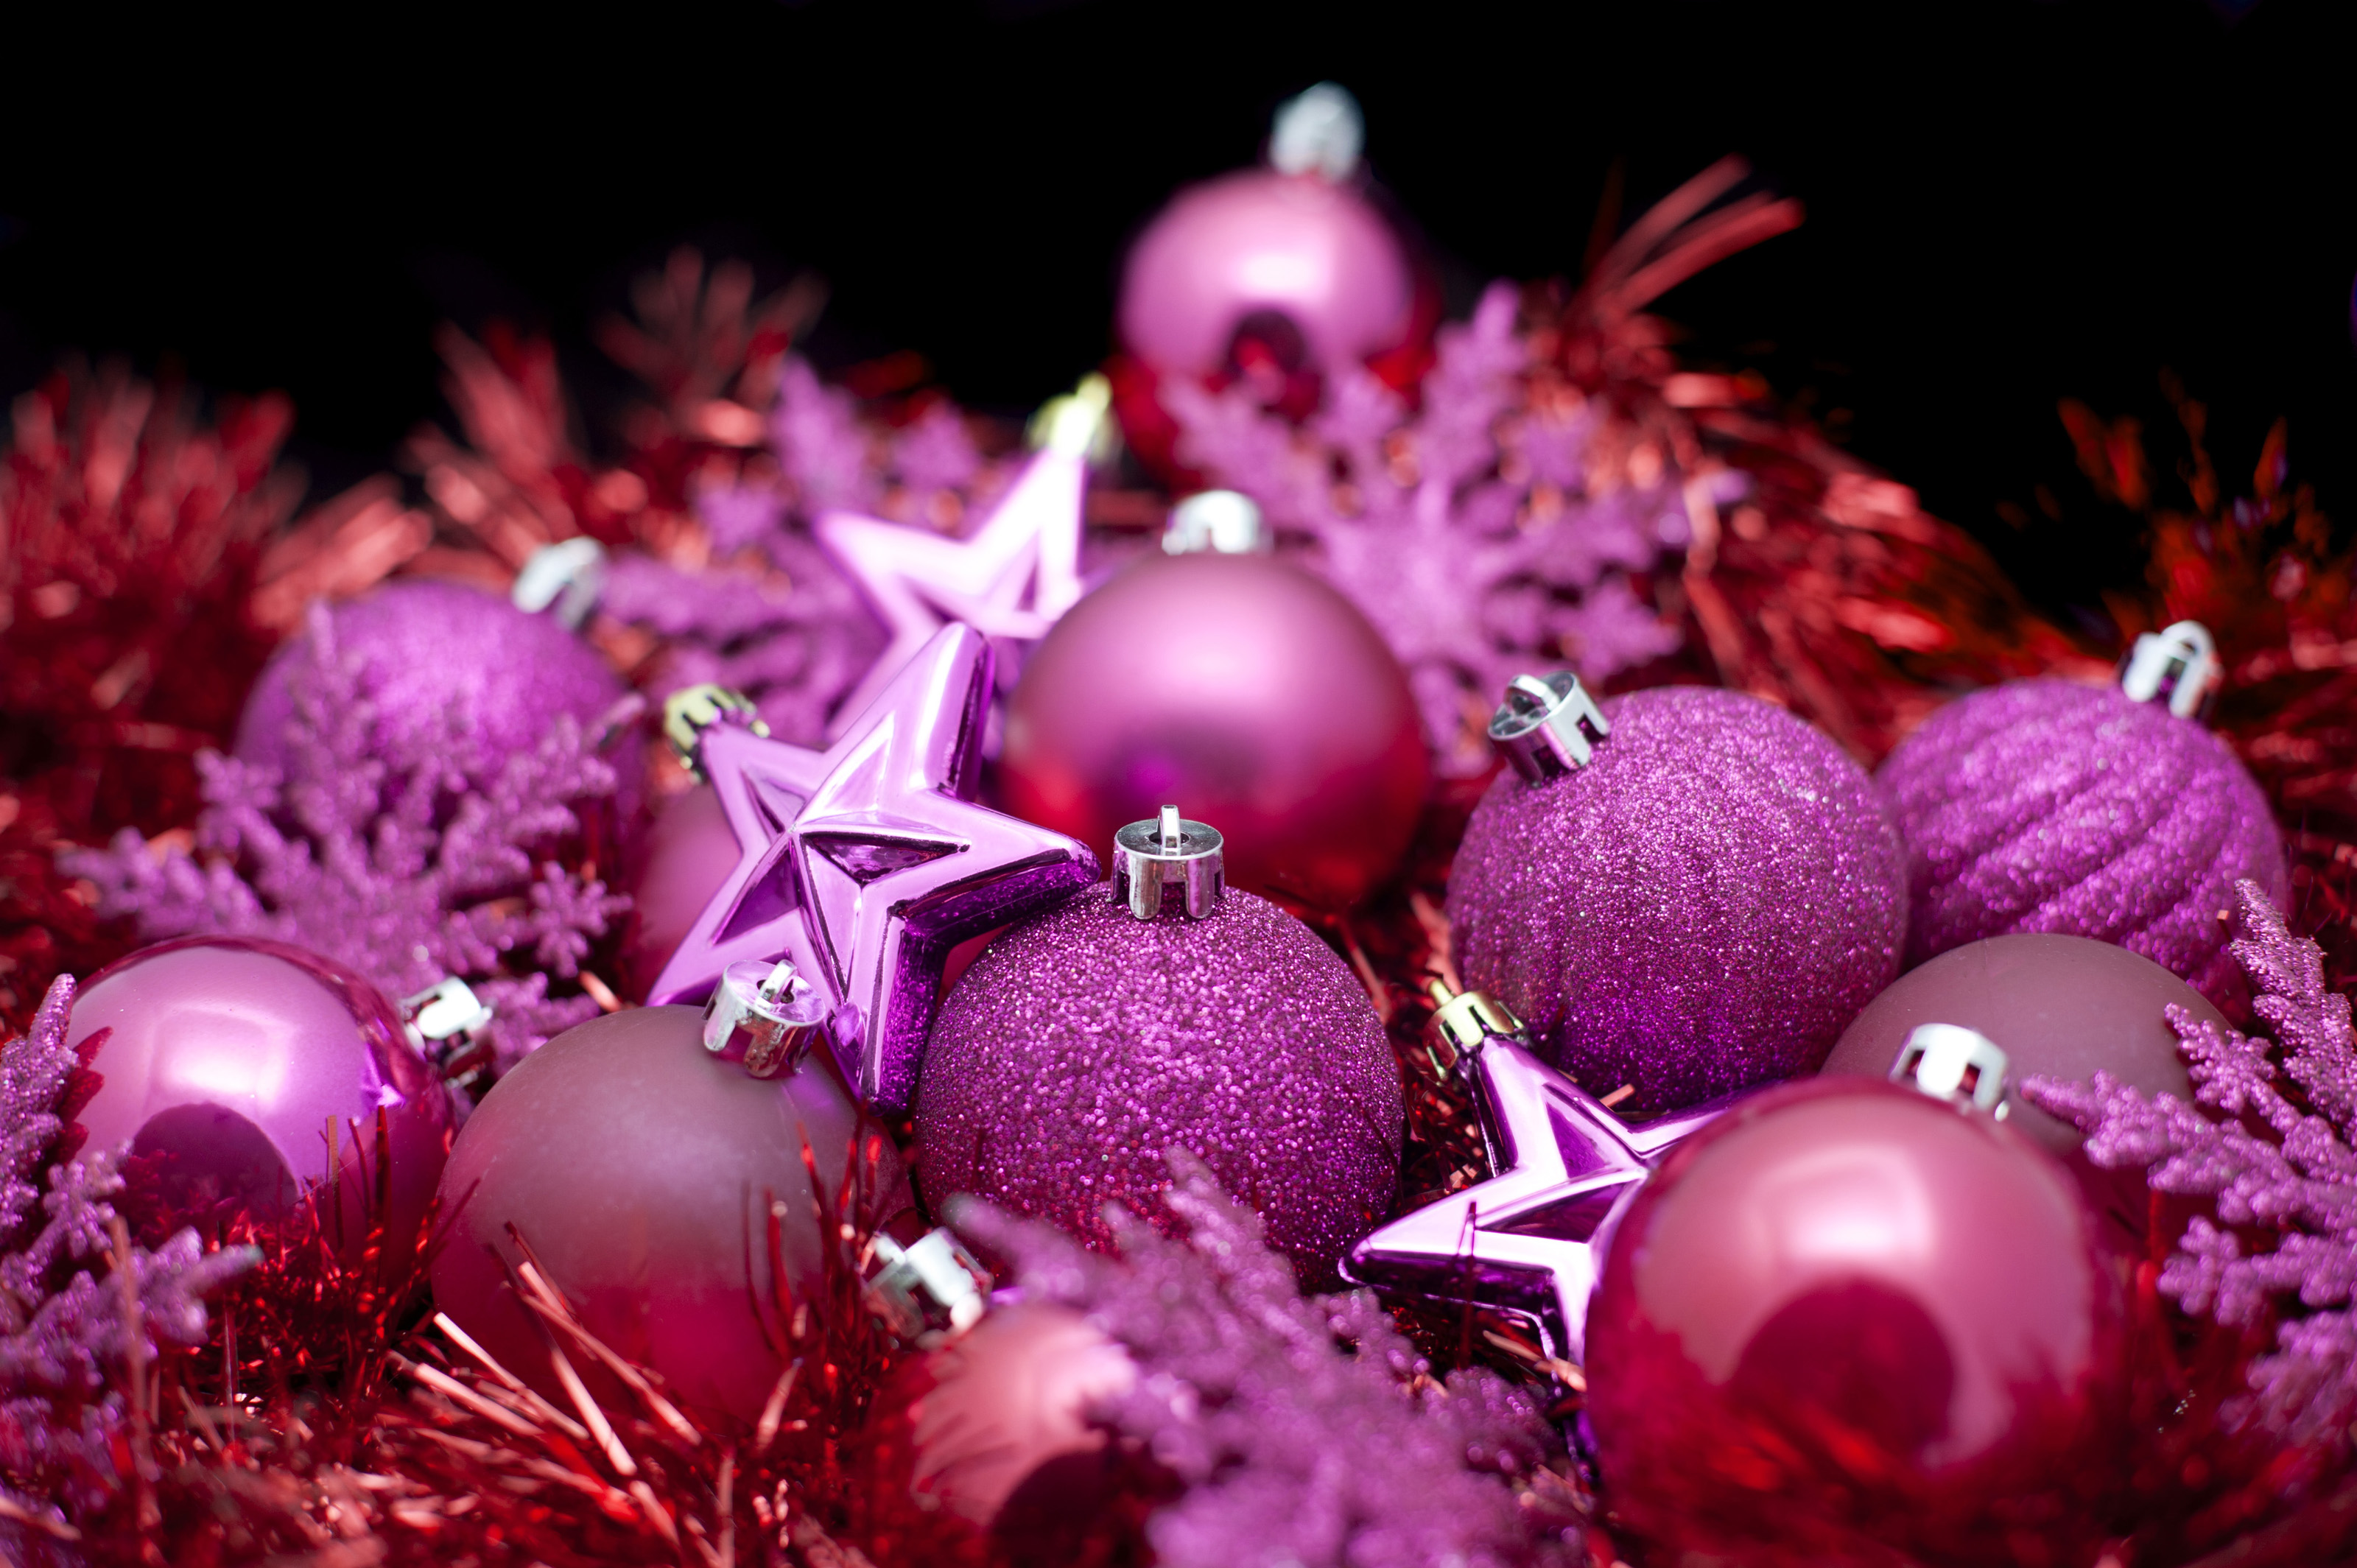 Background of pink Christmas decorations 6334 Stockarch 3200x2129